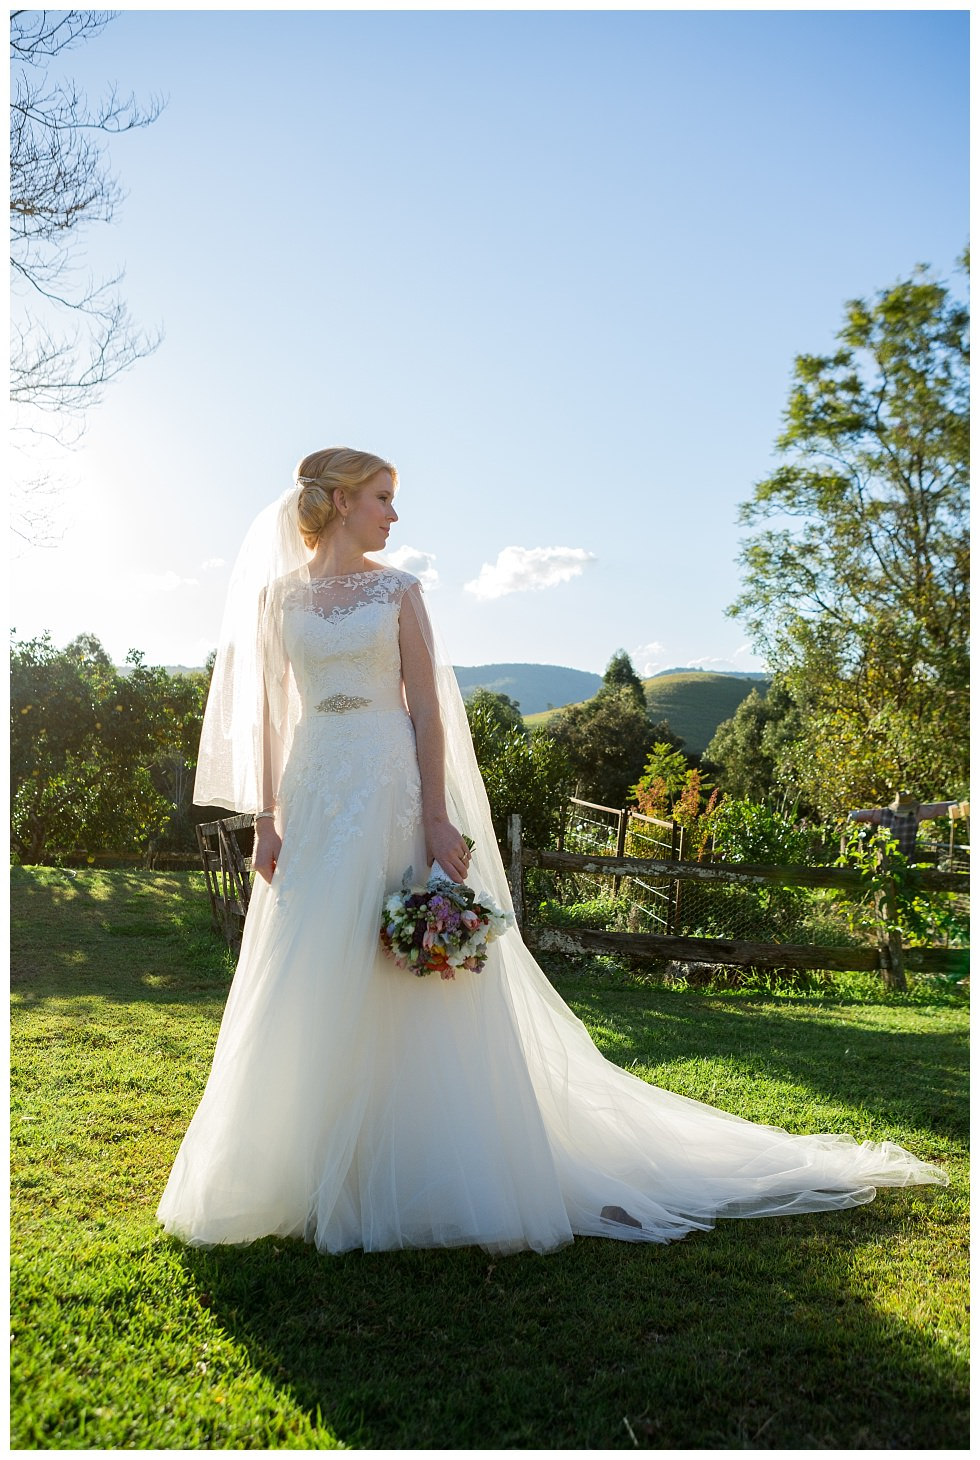 ArtyJ Photography | © Popcorn Photography – Used with Permission, Tocal, Tocal Homestead, Winter Wedding, Wedding, Australia, NSW, Photography | Louise & Luke | Wedding